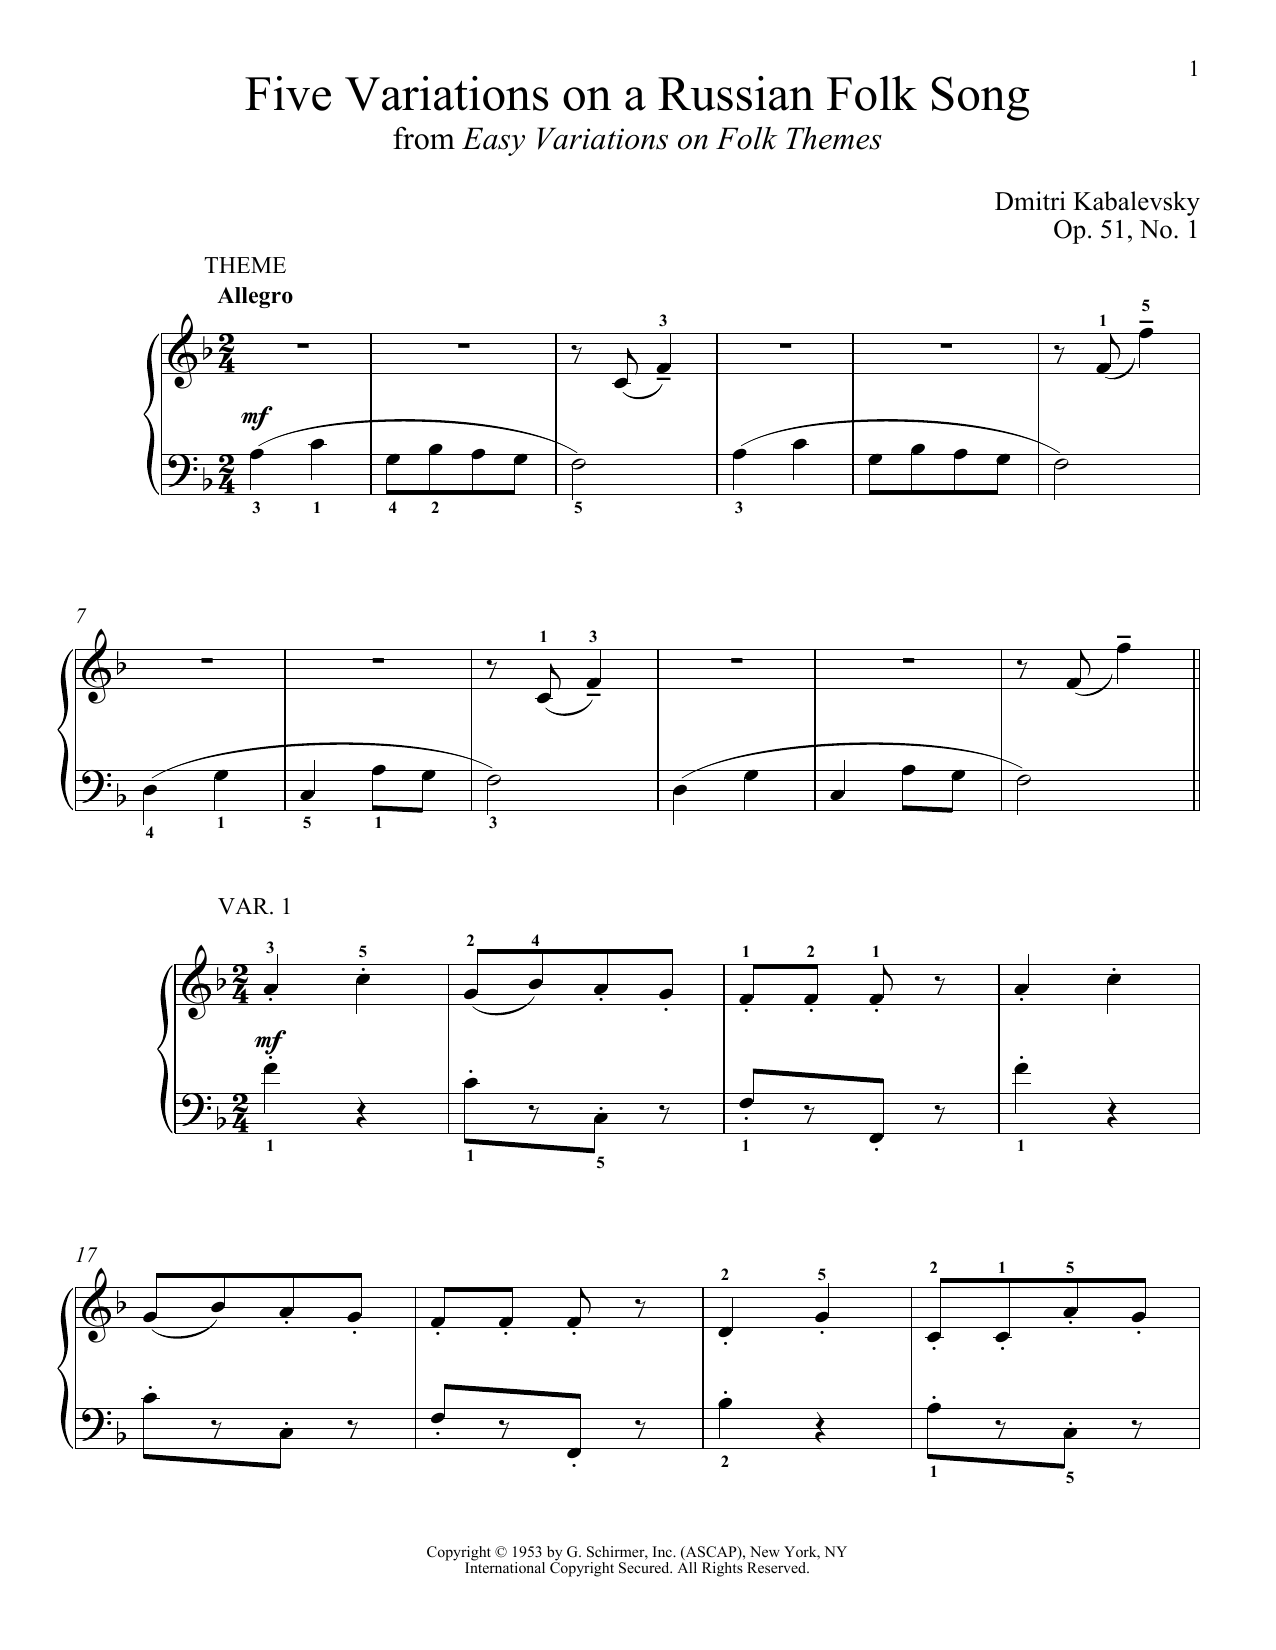 Dmitri Kabalevsky Five Variations On A Russian Folk Song, Op. 51, No. 1 sheet music notes and chords. Download Printable PDF.